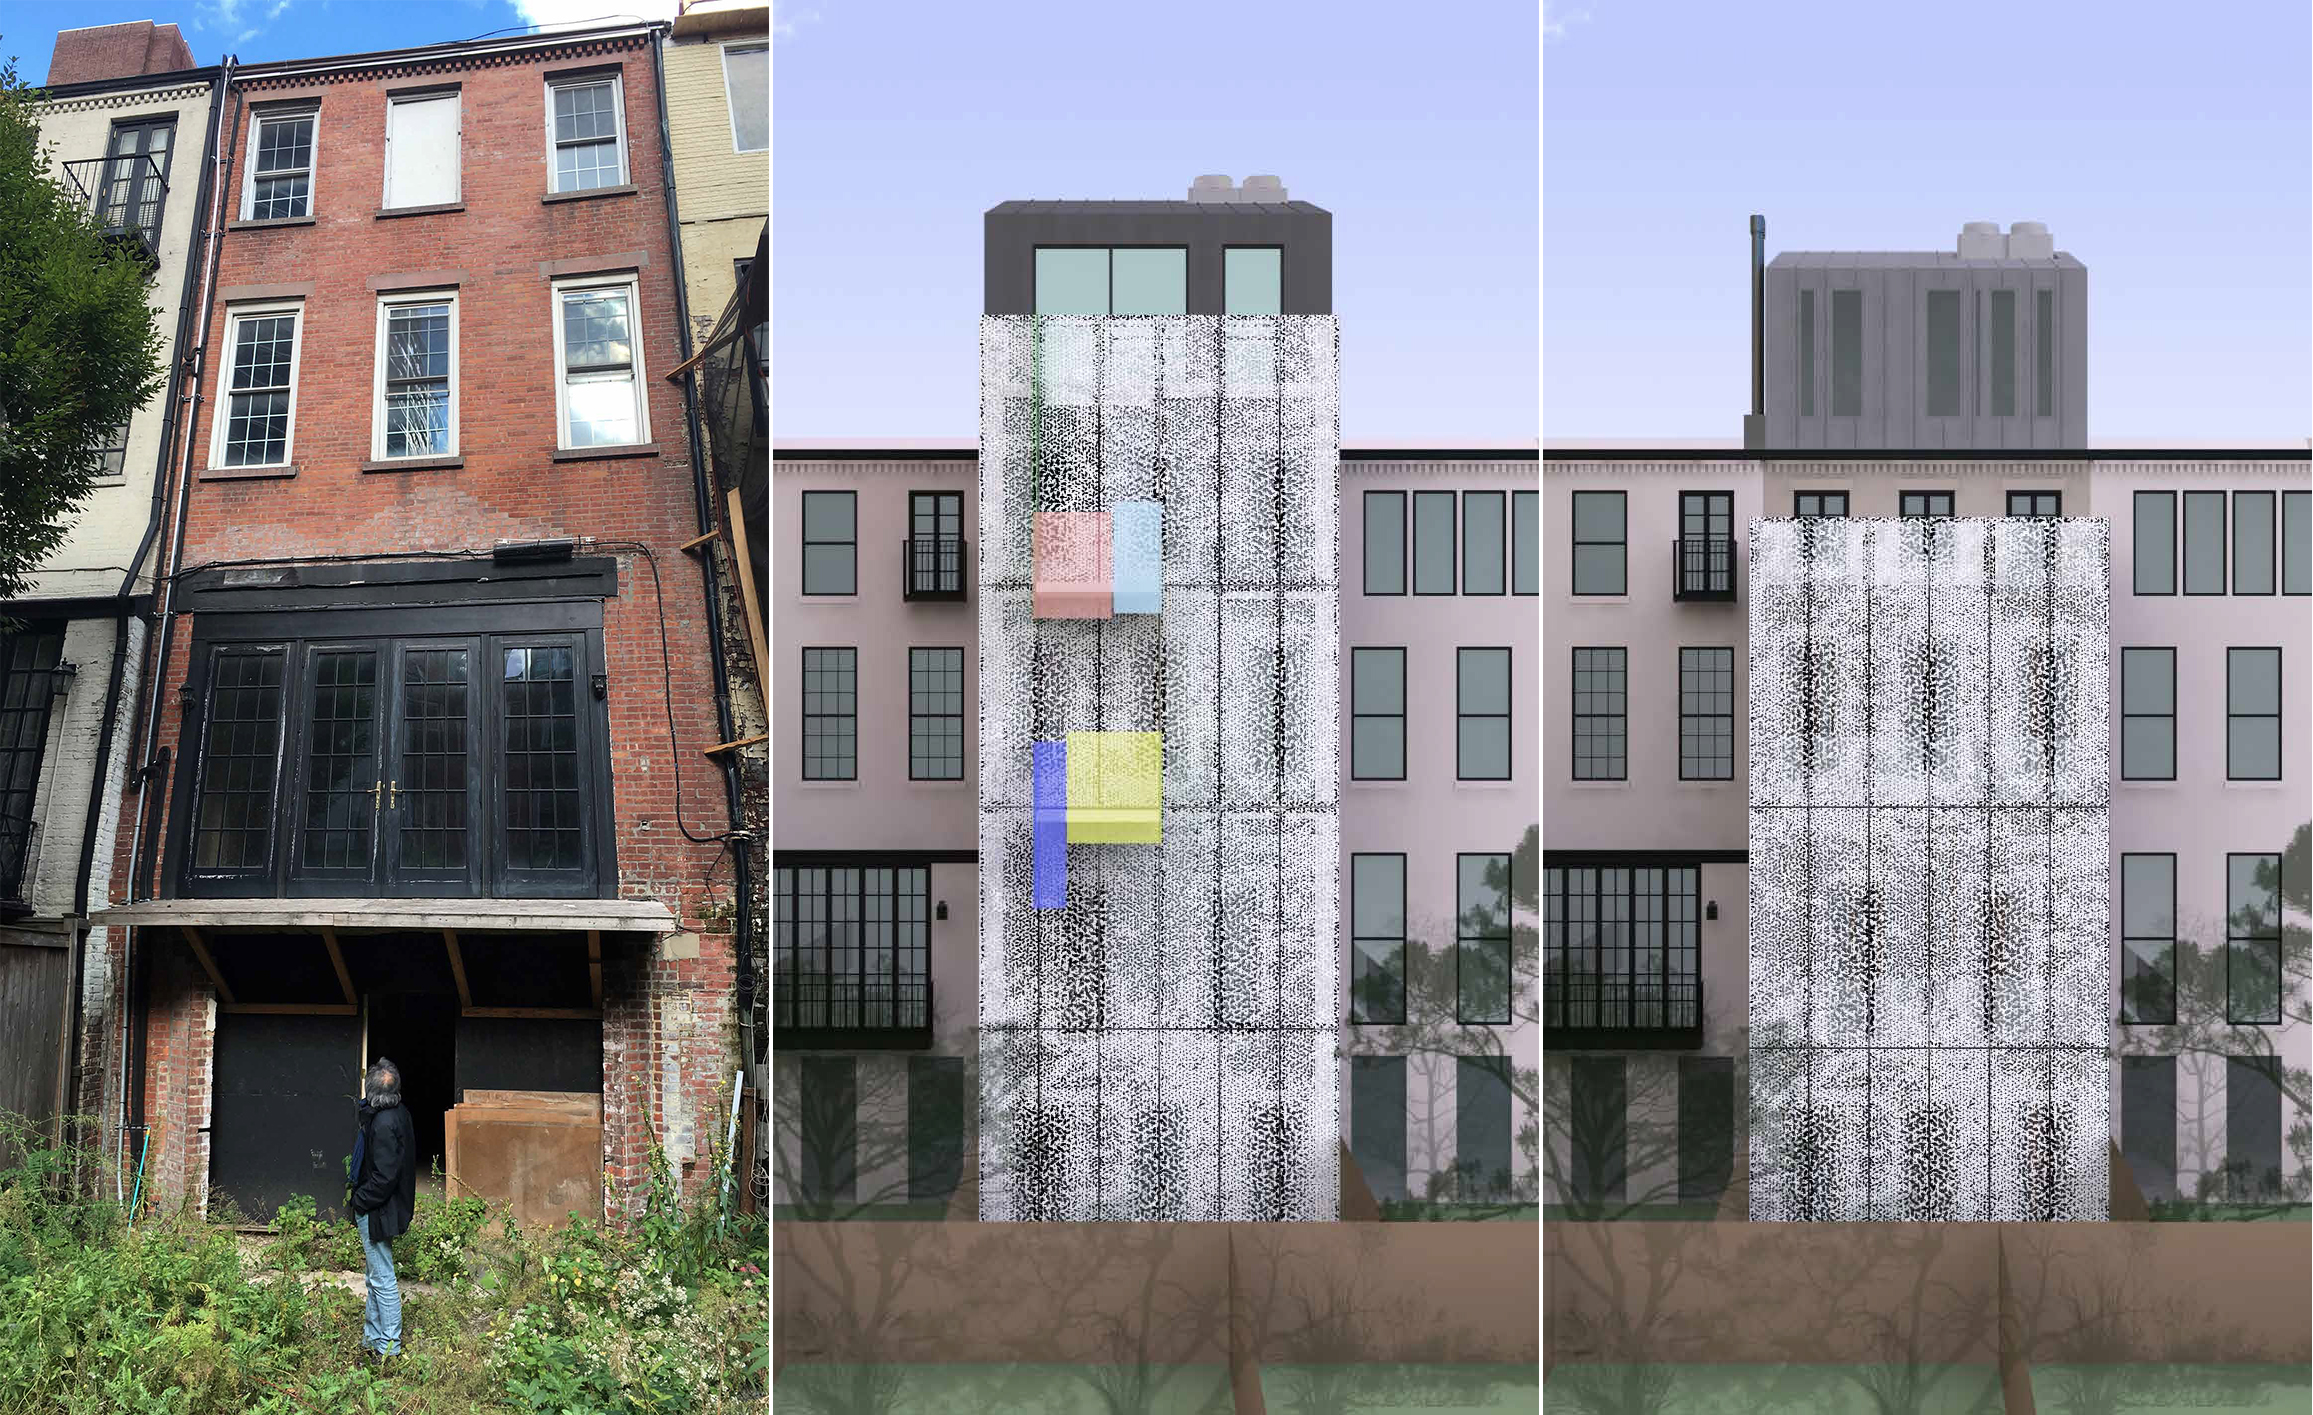 The rear of 210 East 62nd Street - existing, previous proposal, and revised proposal